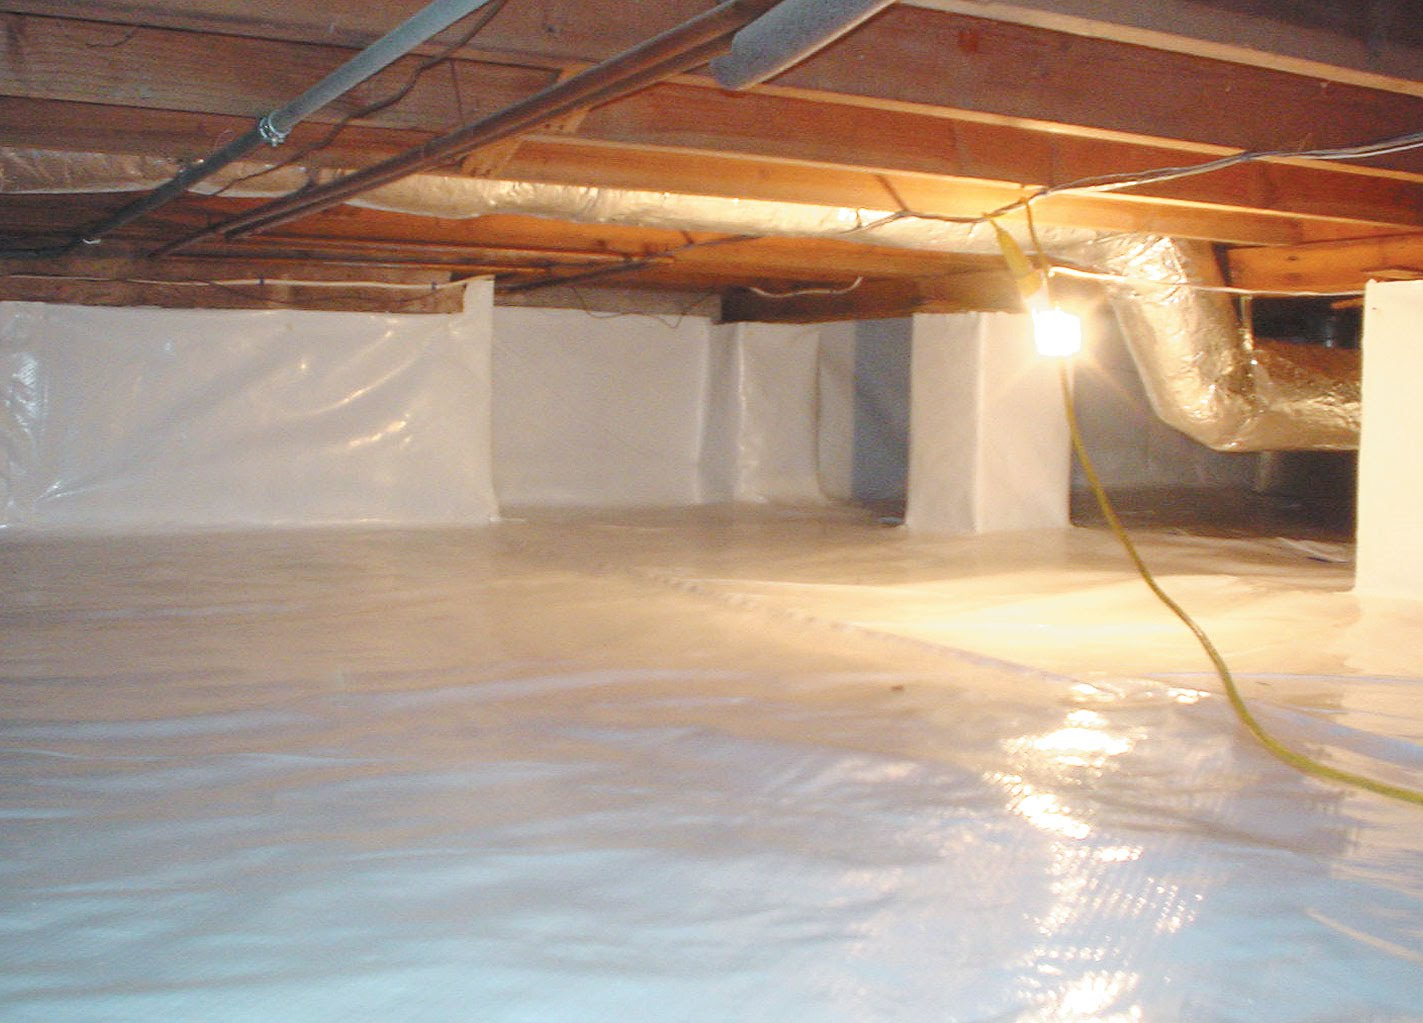 Crawl Space Waterproofing | Nassau County, NY | A.M. Shield Waterproofing Corp.